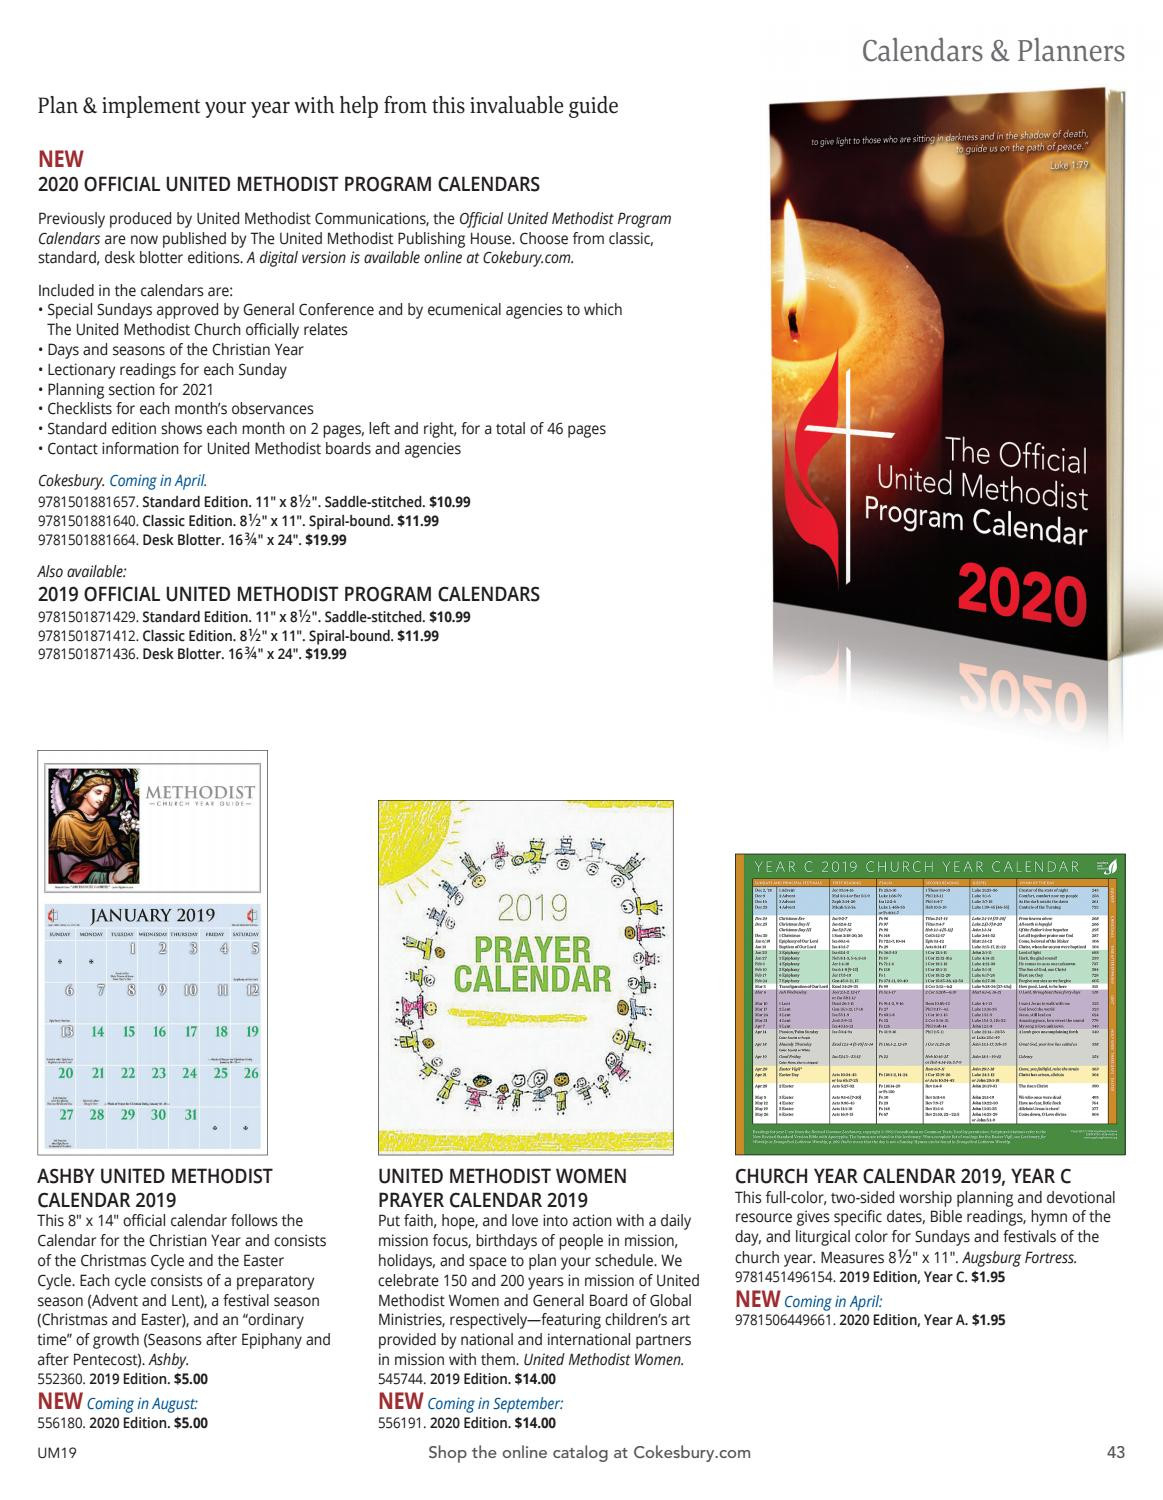 The United Methodist Church Resources For 2019 Catalog  Methodist Lectionary For 2021